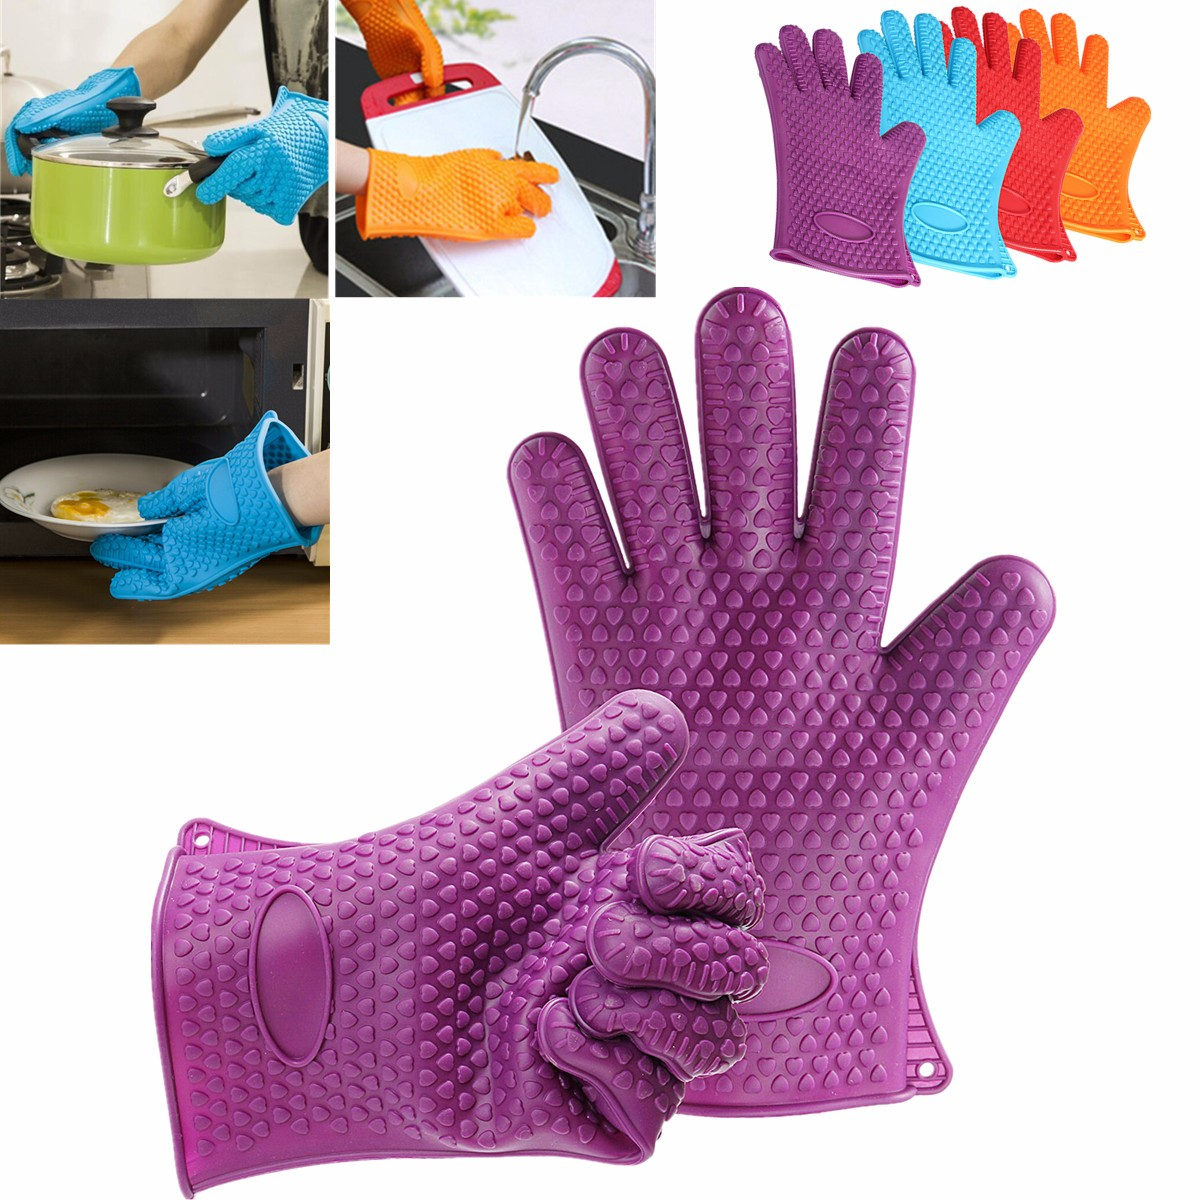 1 Pair Silicone Kitchen Heat Resistant Gloves Oven Grill Pot Holder BBQ Cooking Protective gloves цена